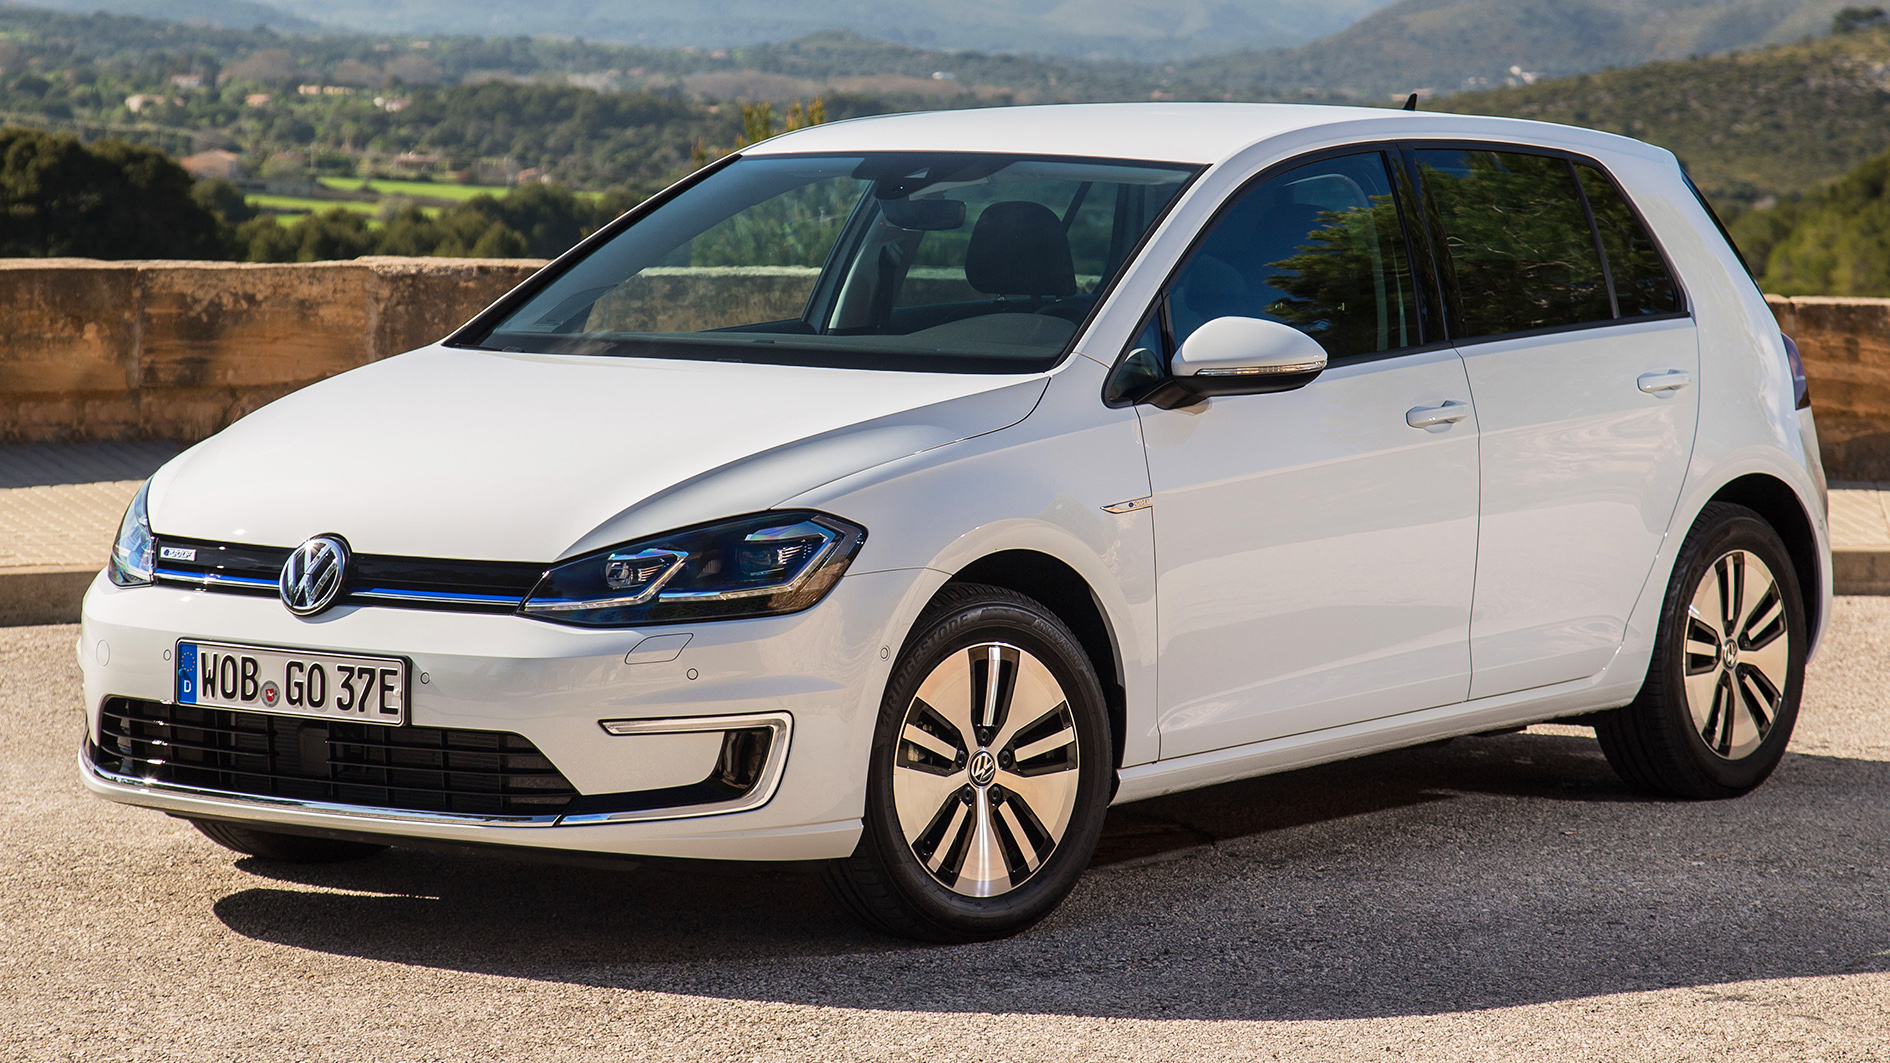 vw e golf vw golf r test drive on mallorca review driving free car. Black Bedroom Furniture Sets. Home Design Ideas